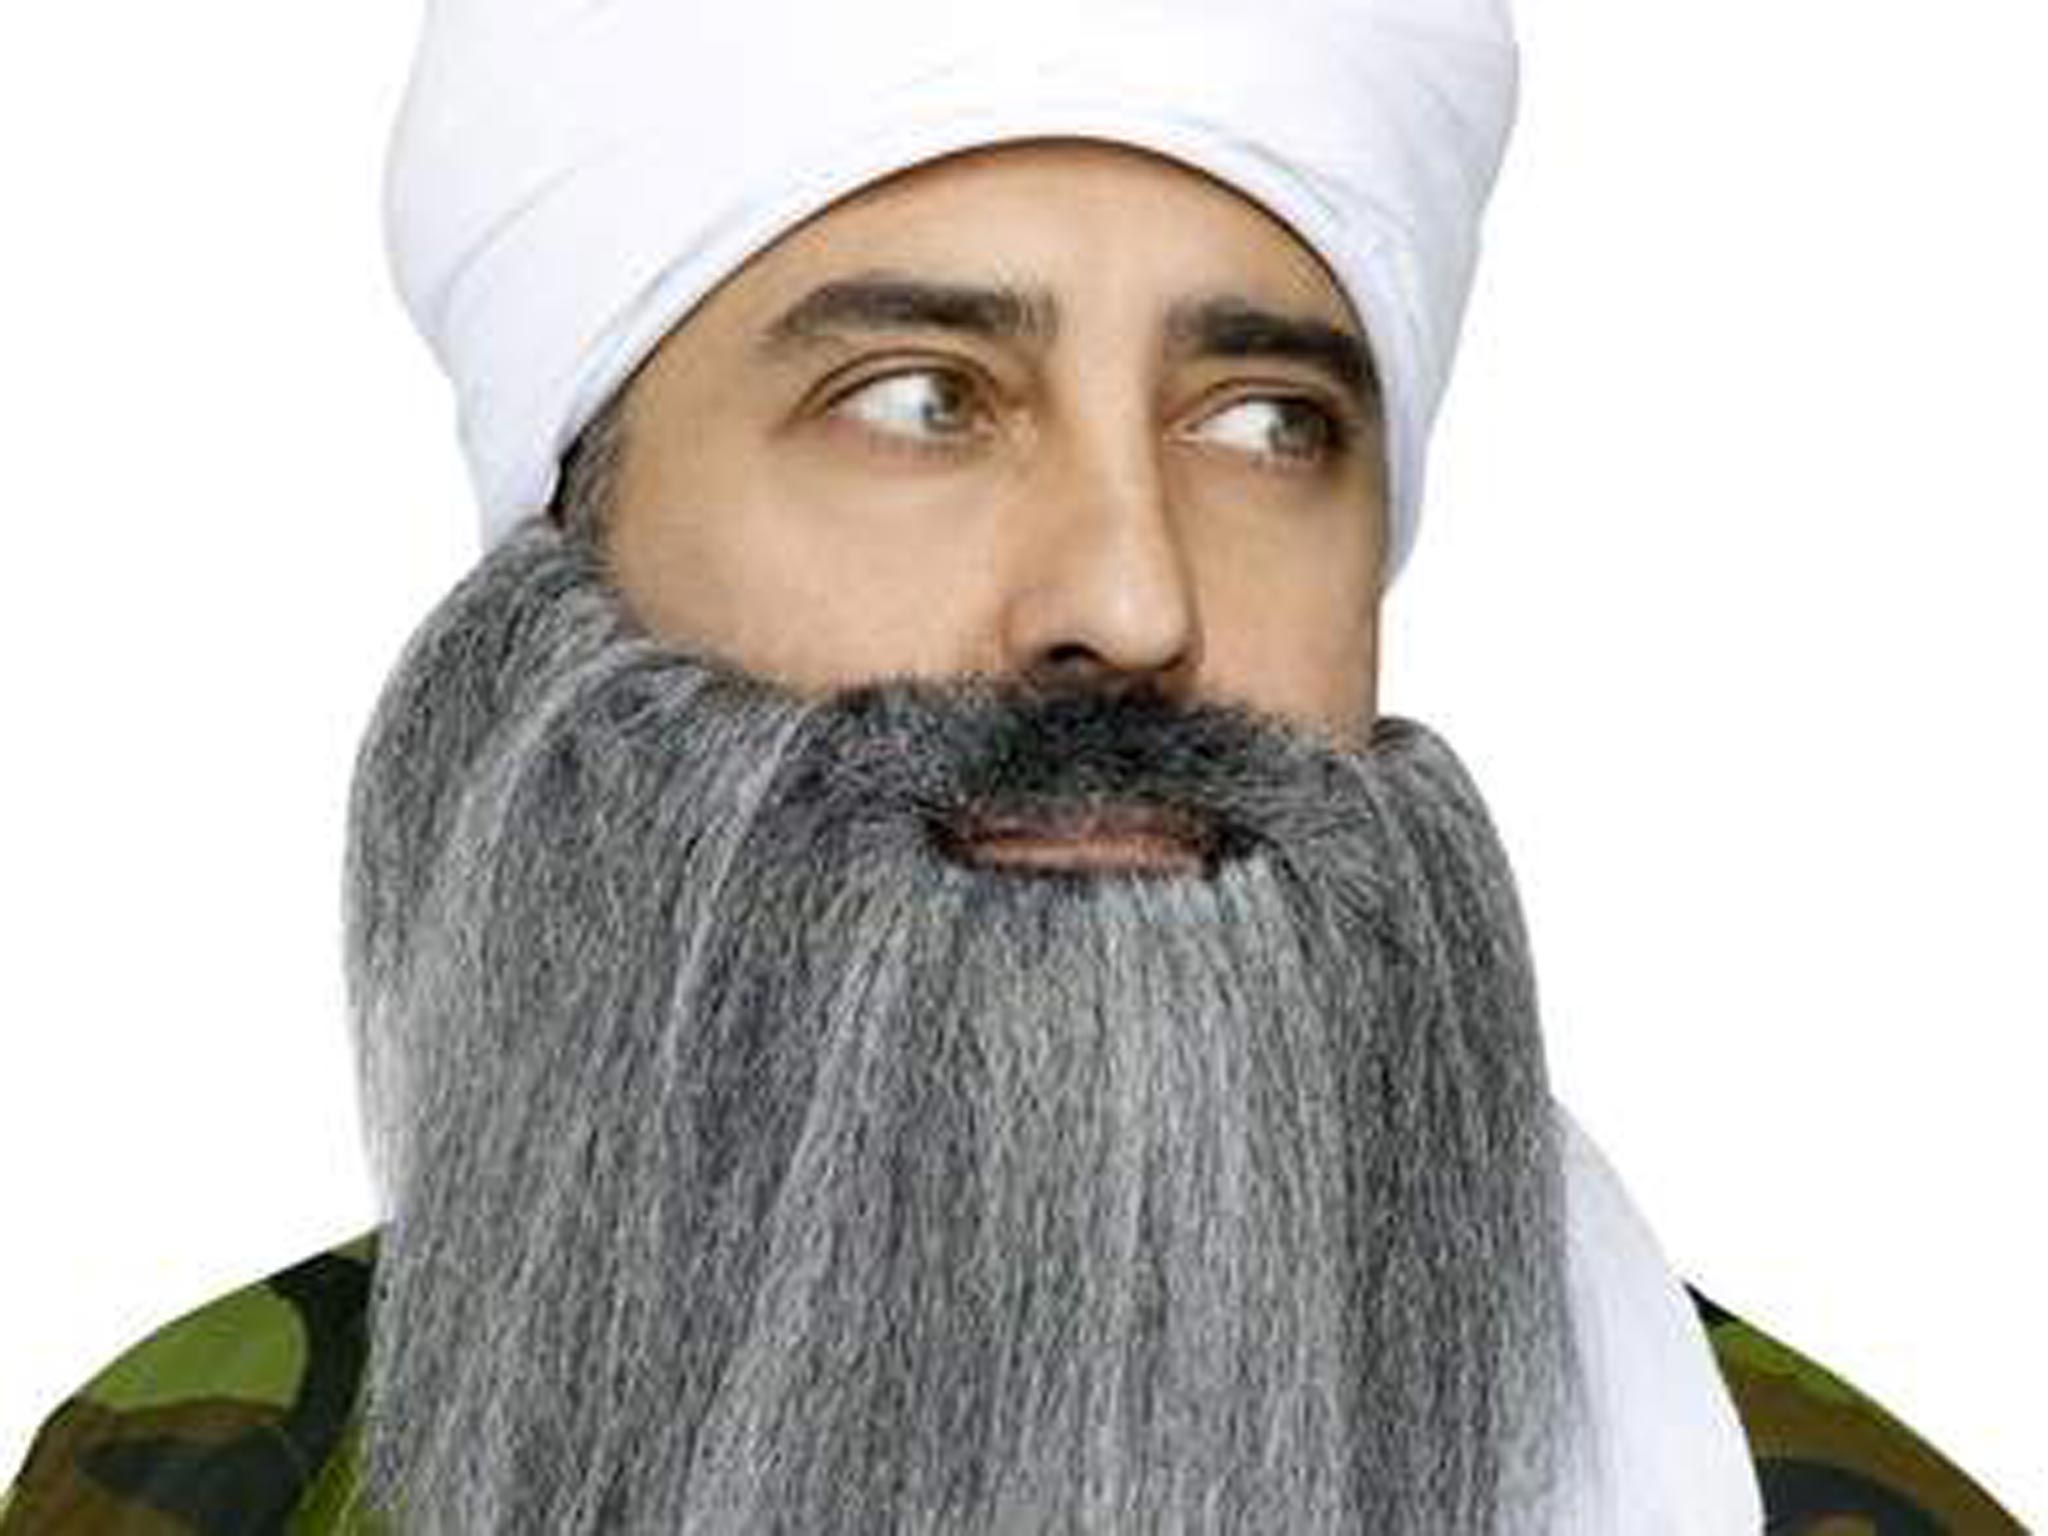 US retailers forced to withdraw 'Osama bin Laden' costume after ...